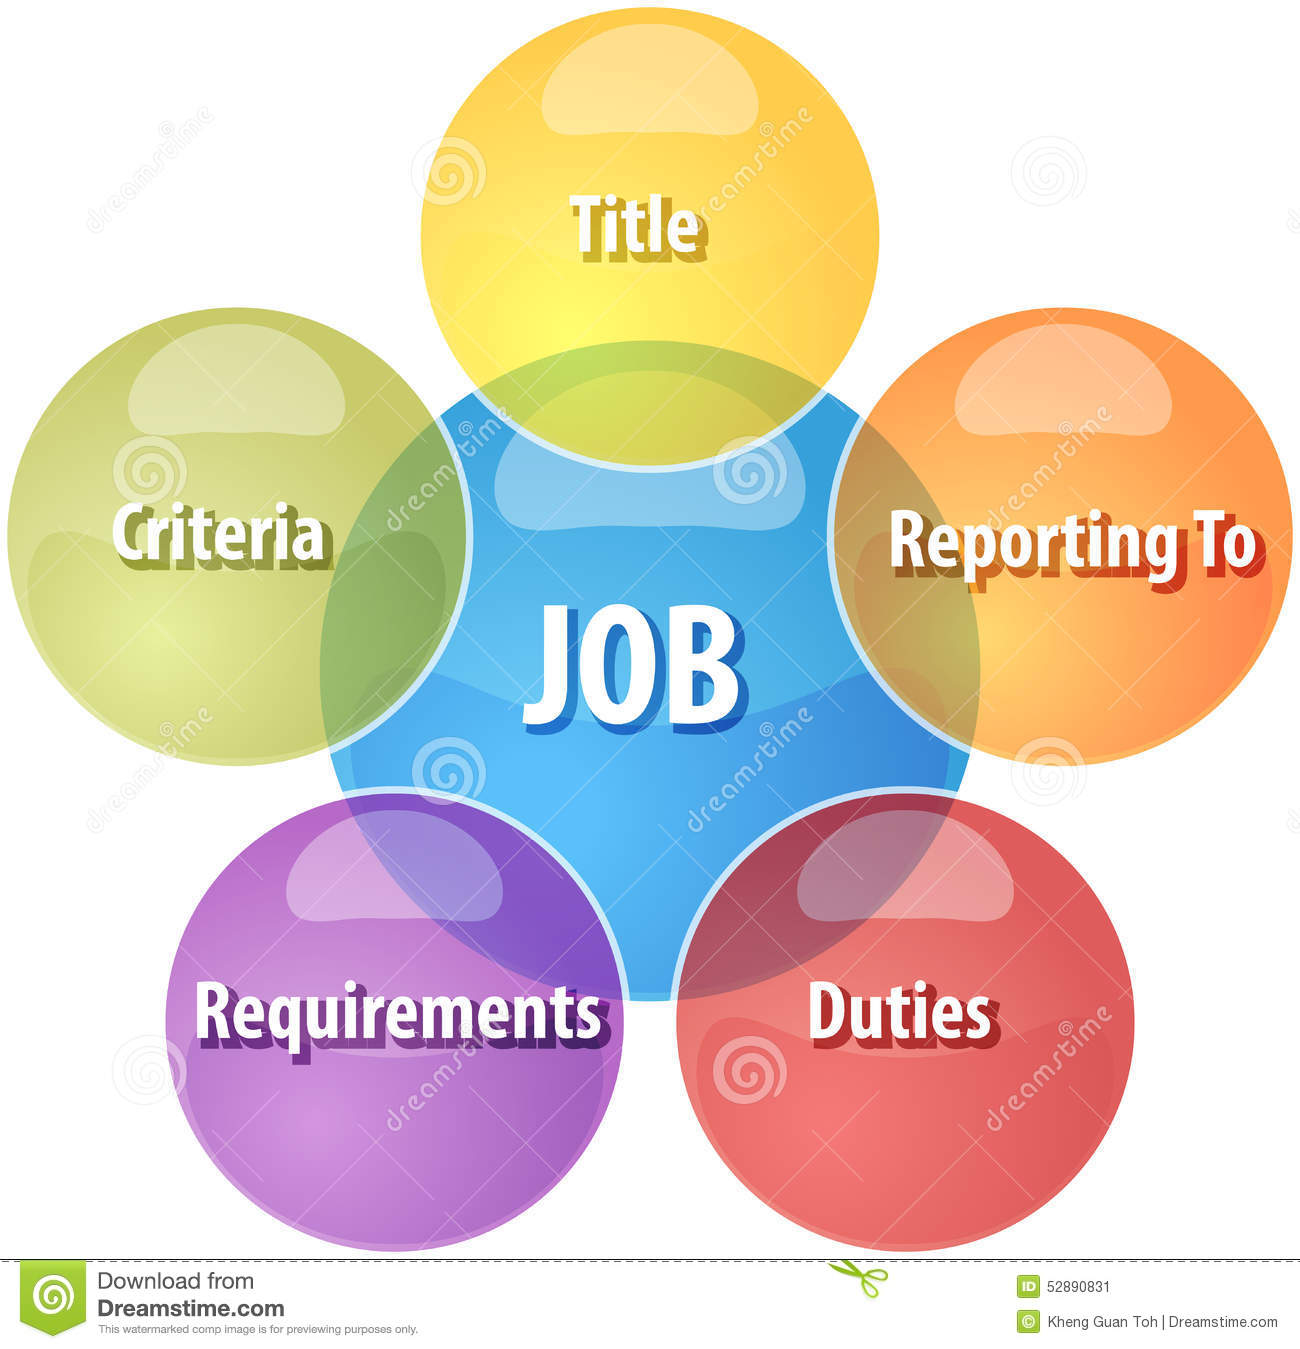 job qualities business diagram illustration stock illustration job qualities business diagram illustration